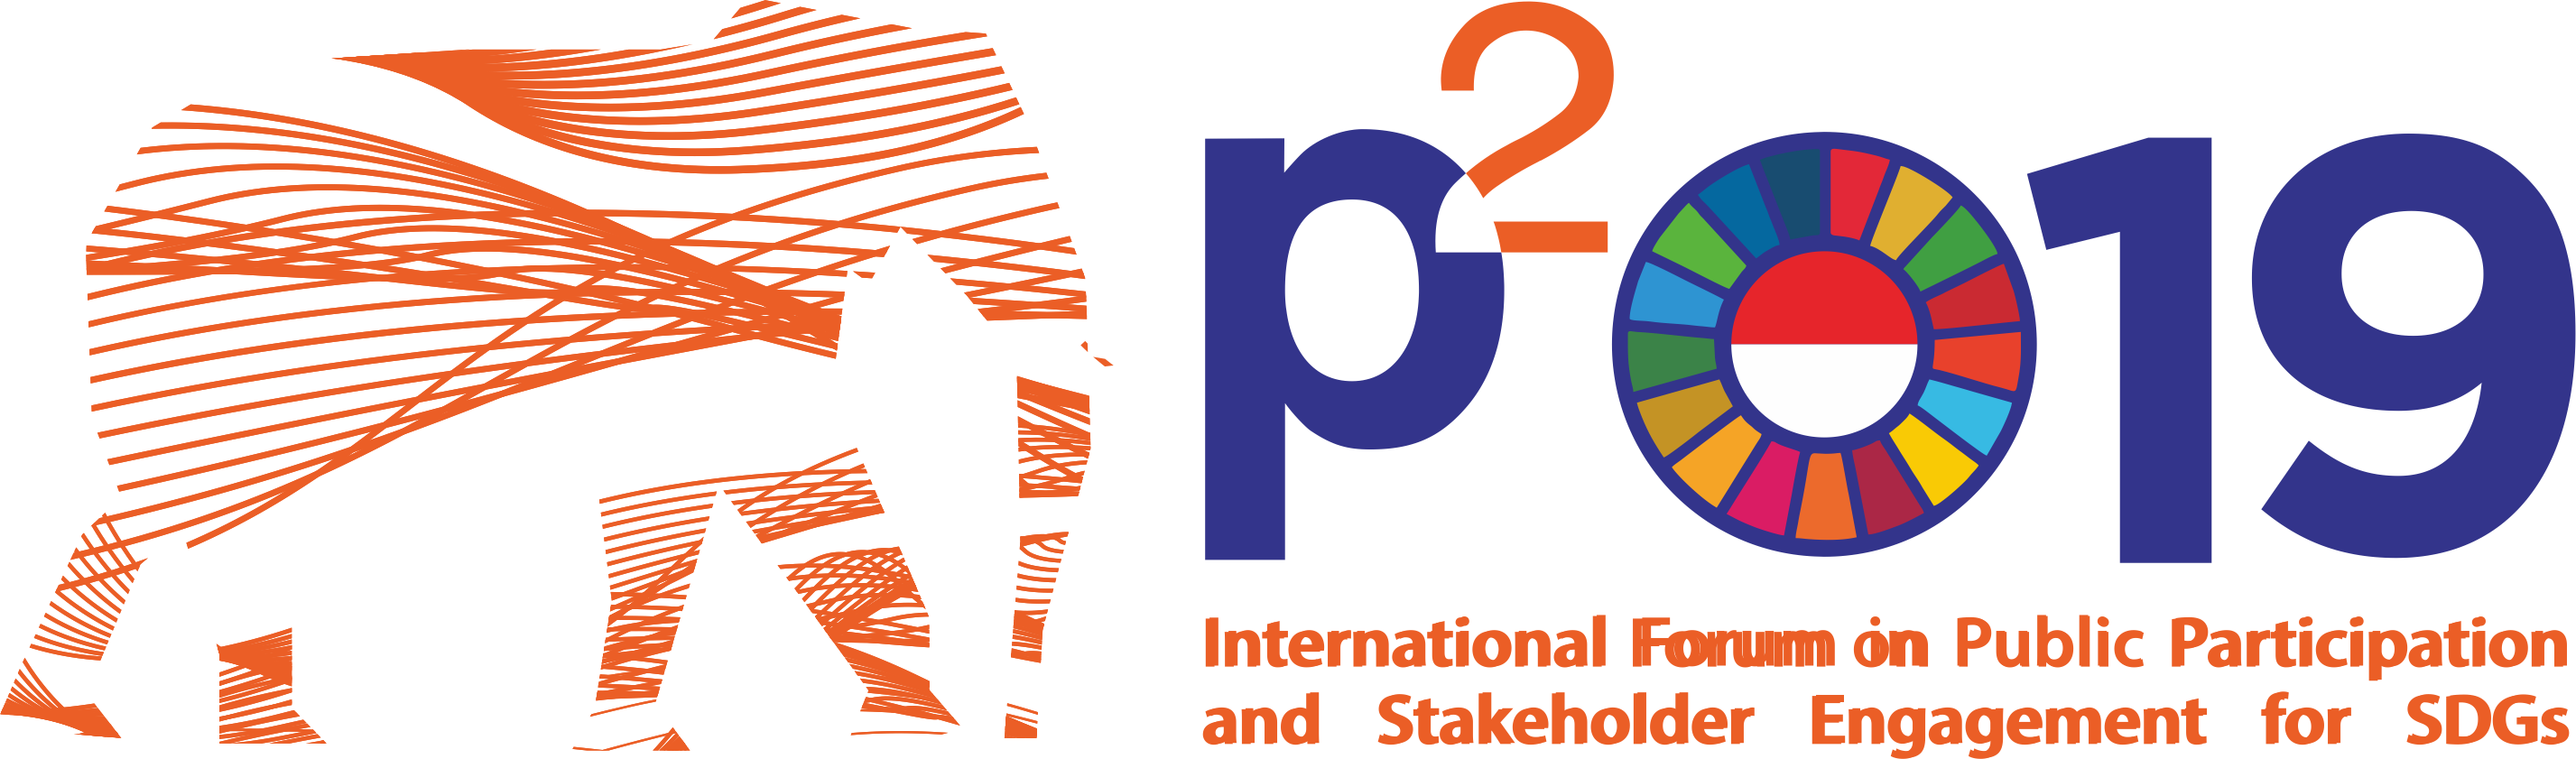 International Forum on Stakeholder Engagement for SDGs